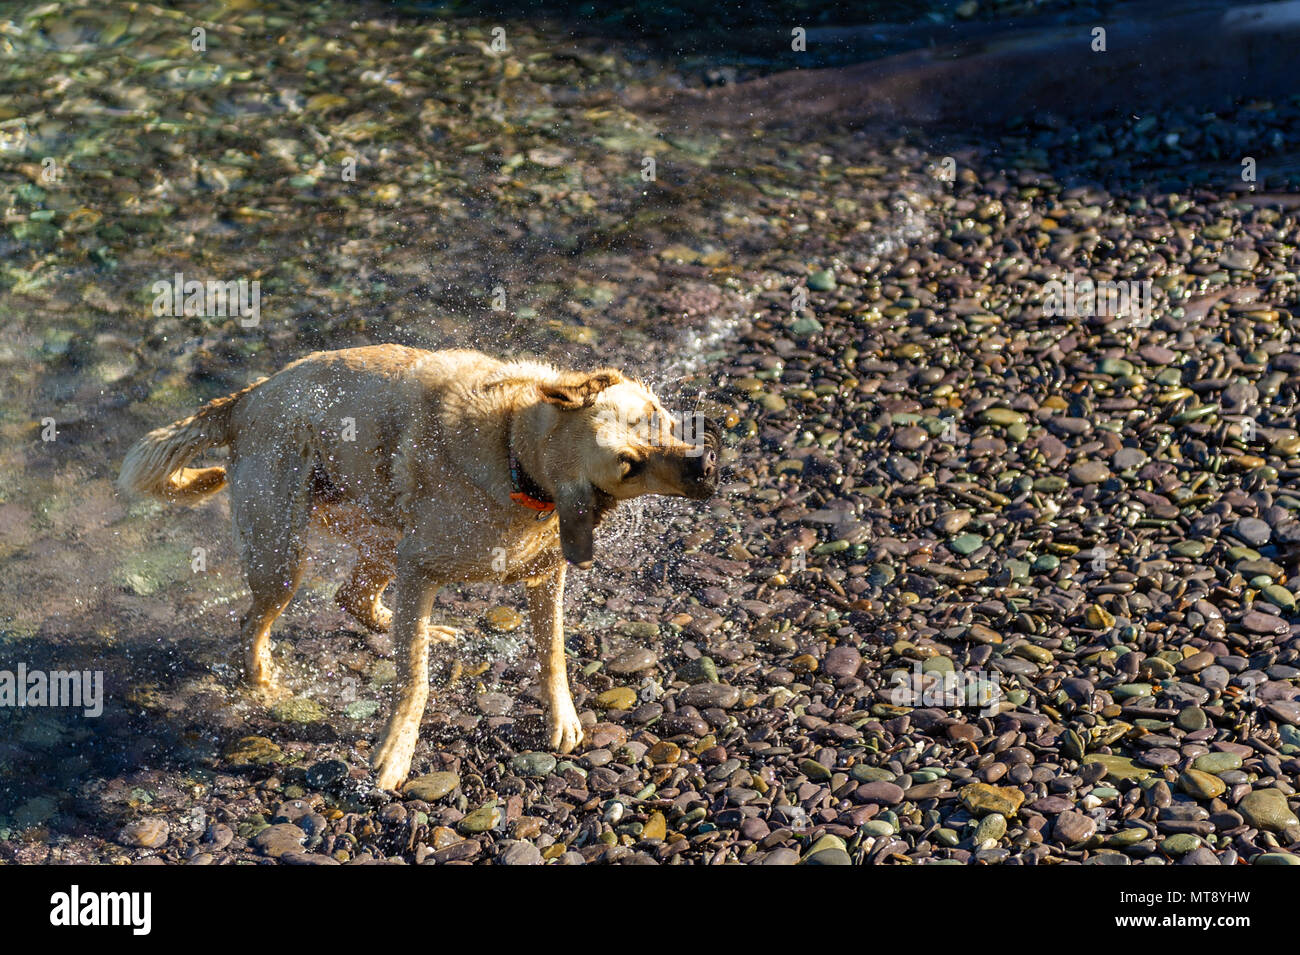 Schull, Ireland. 28th May, 2018.  A dog shakes after a swim in the water in Schull on a blisteringly hot day in Schull. Met Éireann has forecast a warm evening with hazy sunshine and the odd shower with lows of 10 to 14 C. Credit: Andy Gibson/Alamy Live News. Stock Photo